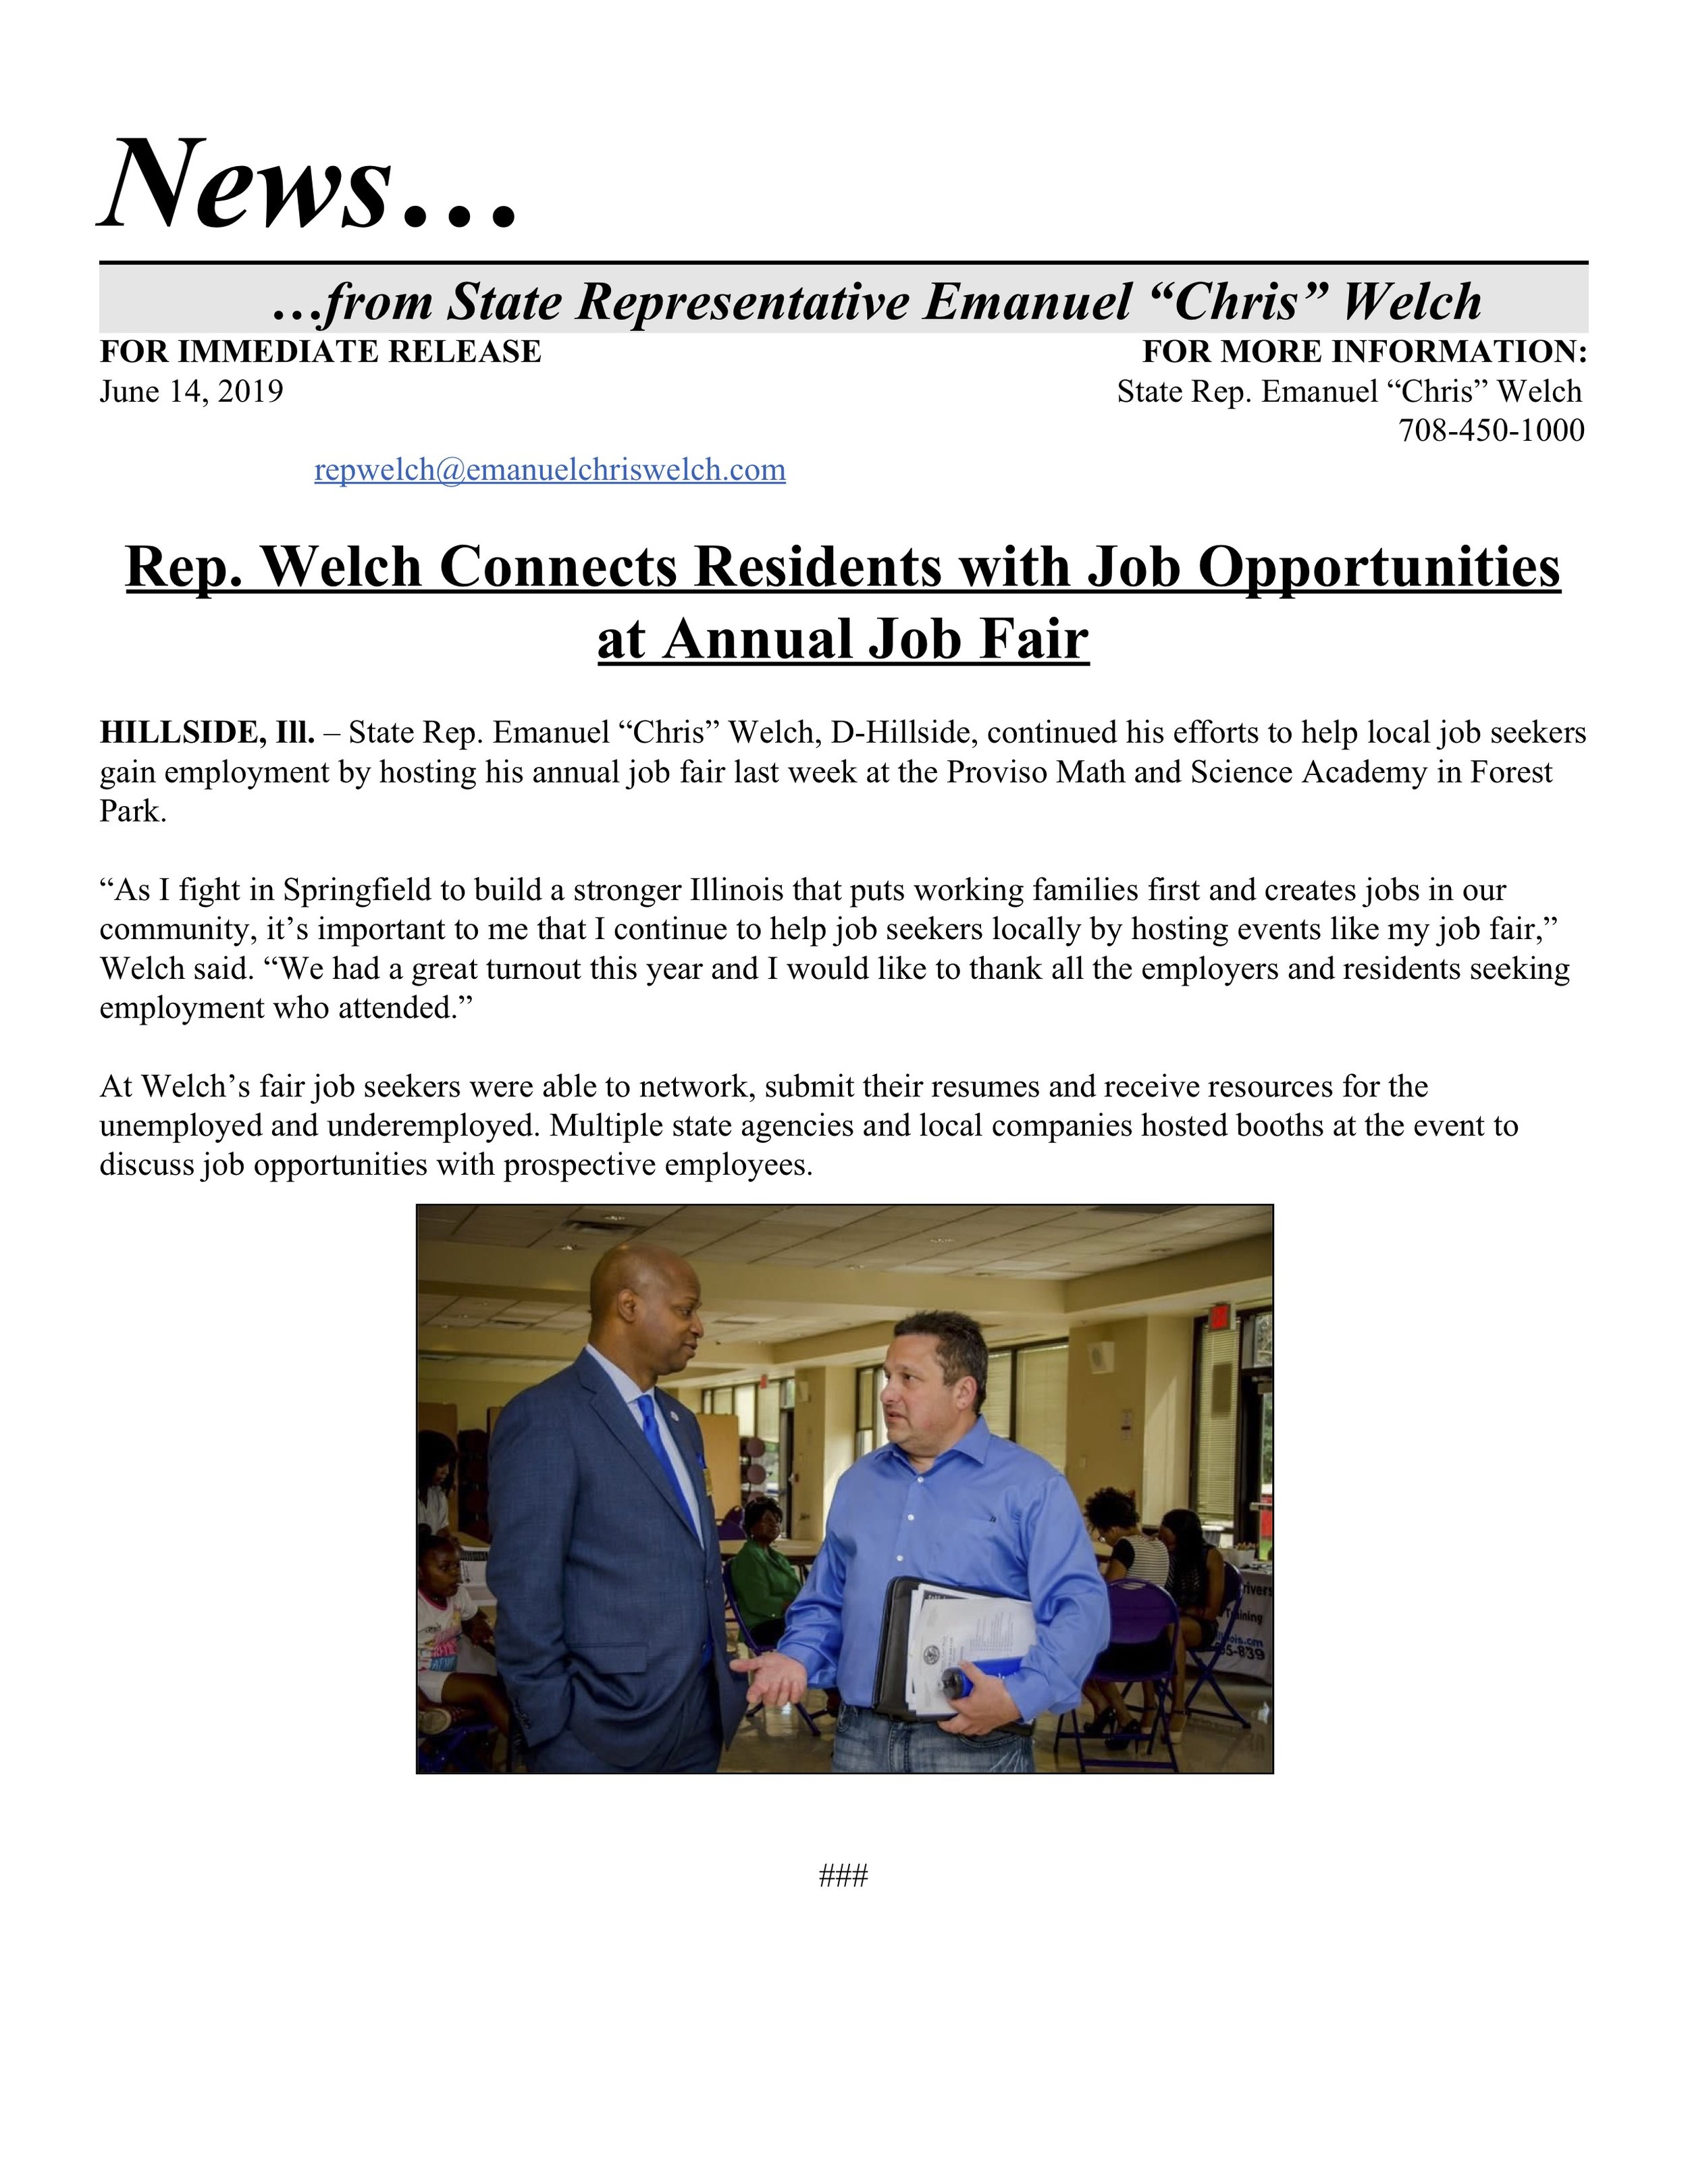 Rep. Welch Connects Residents with Job Opportunities at Annual Job Fair  (June 14, 2019)